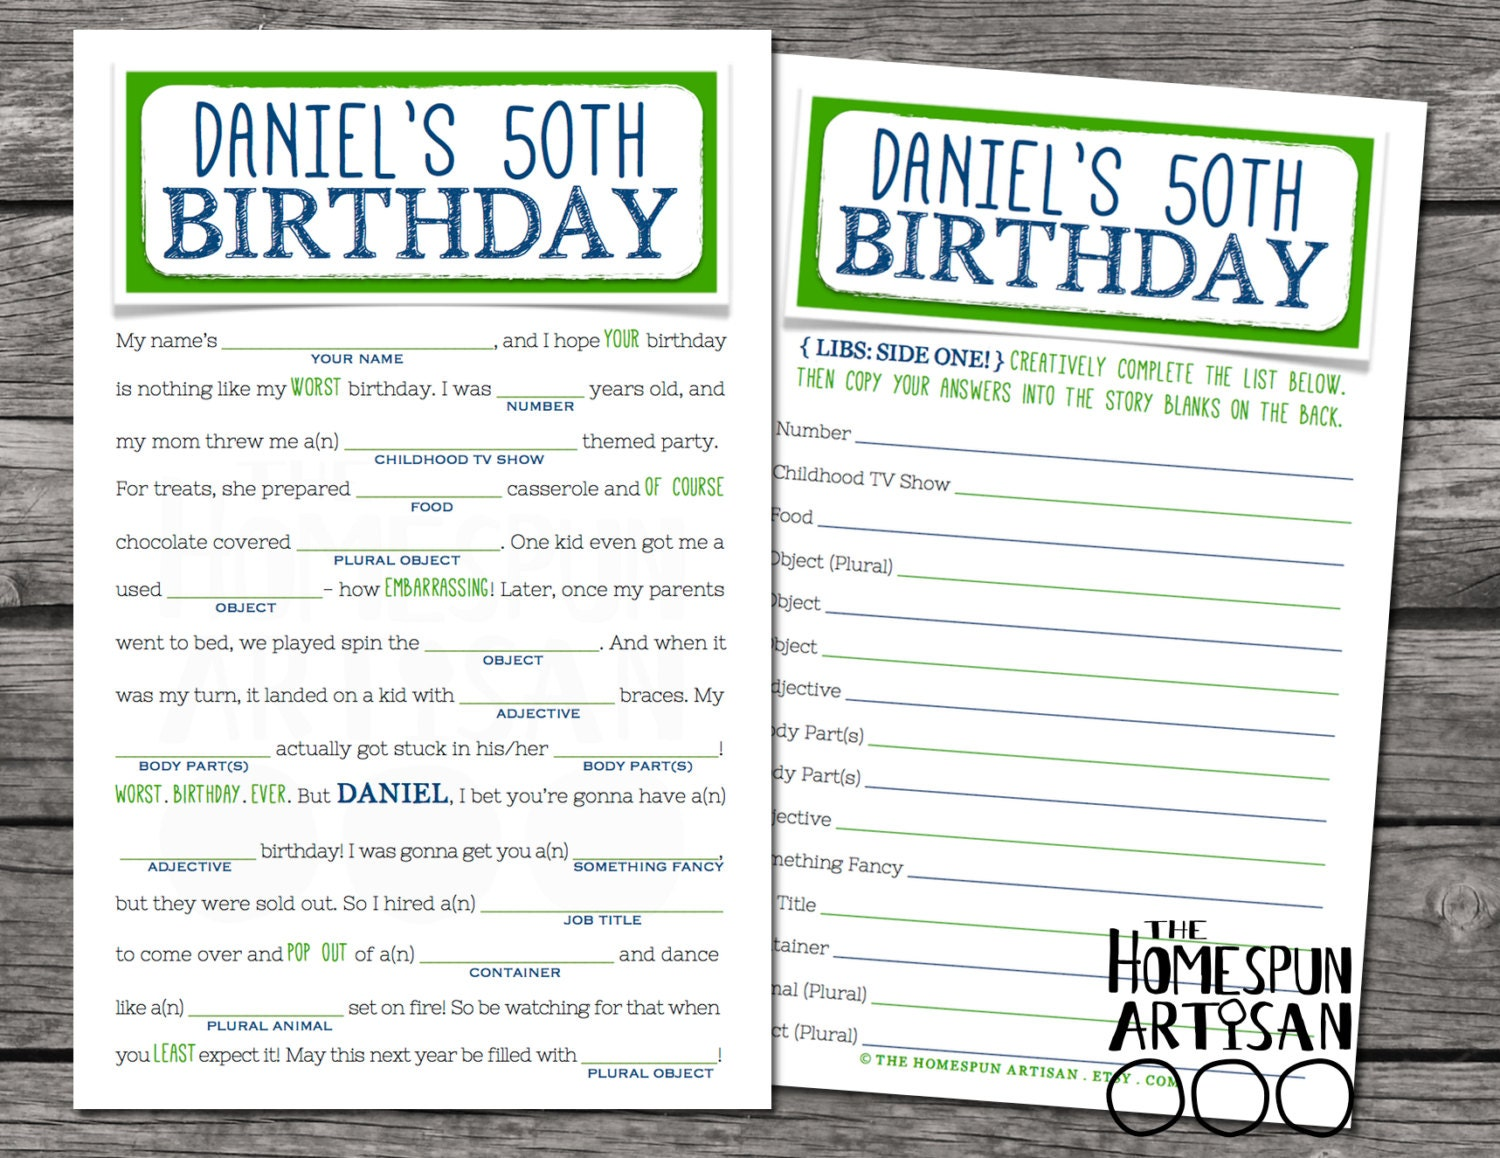 Nifty image with birthday mad libs printable